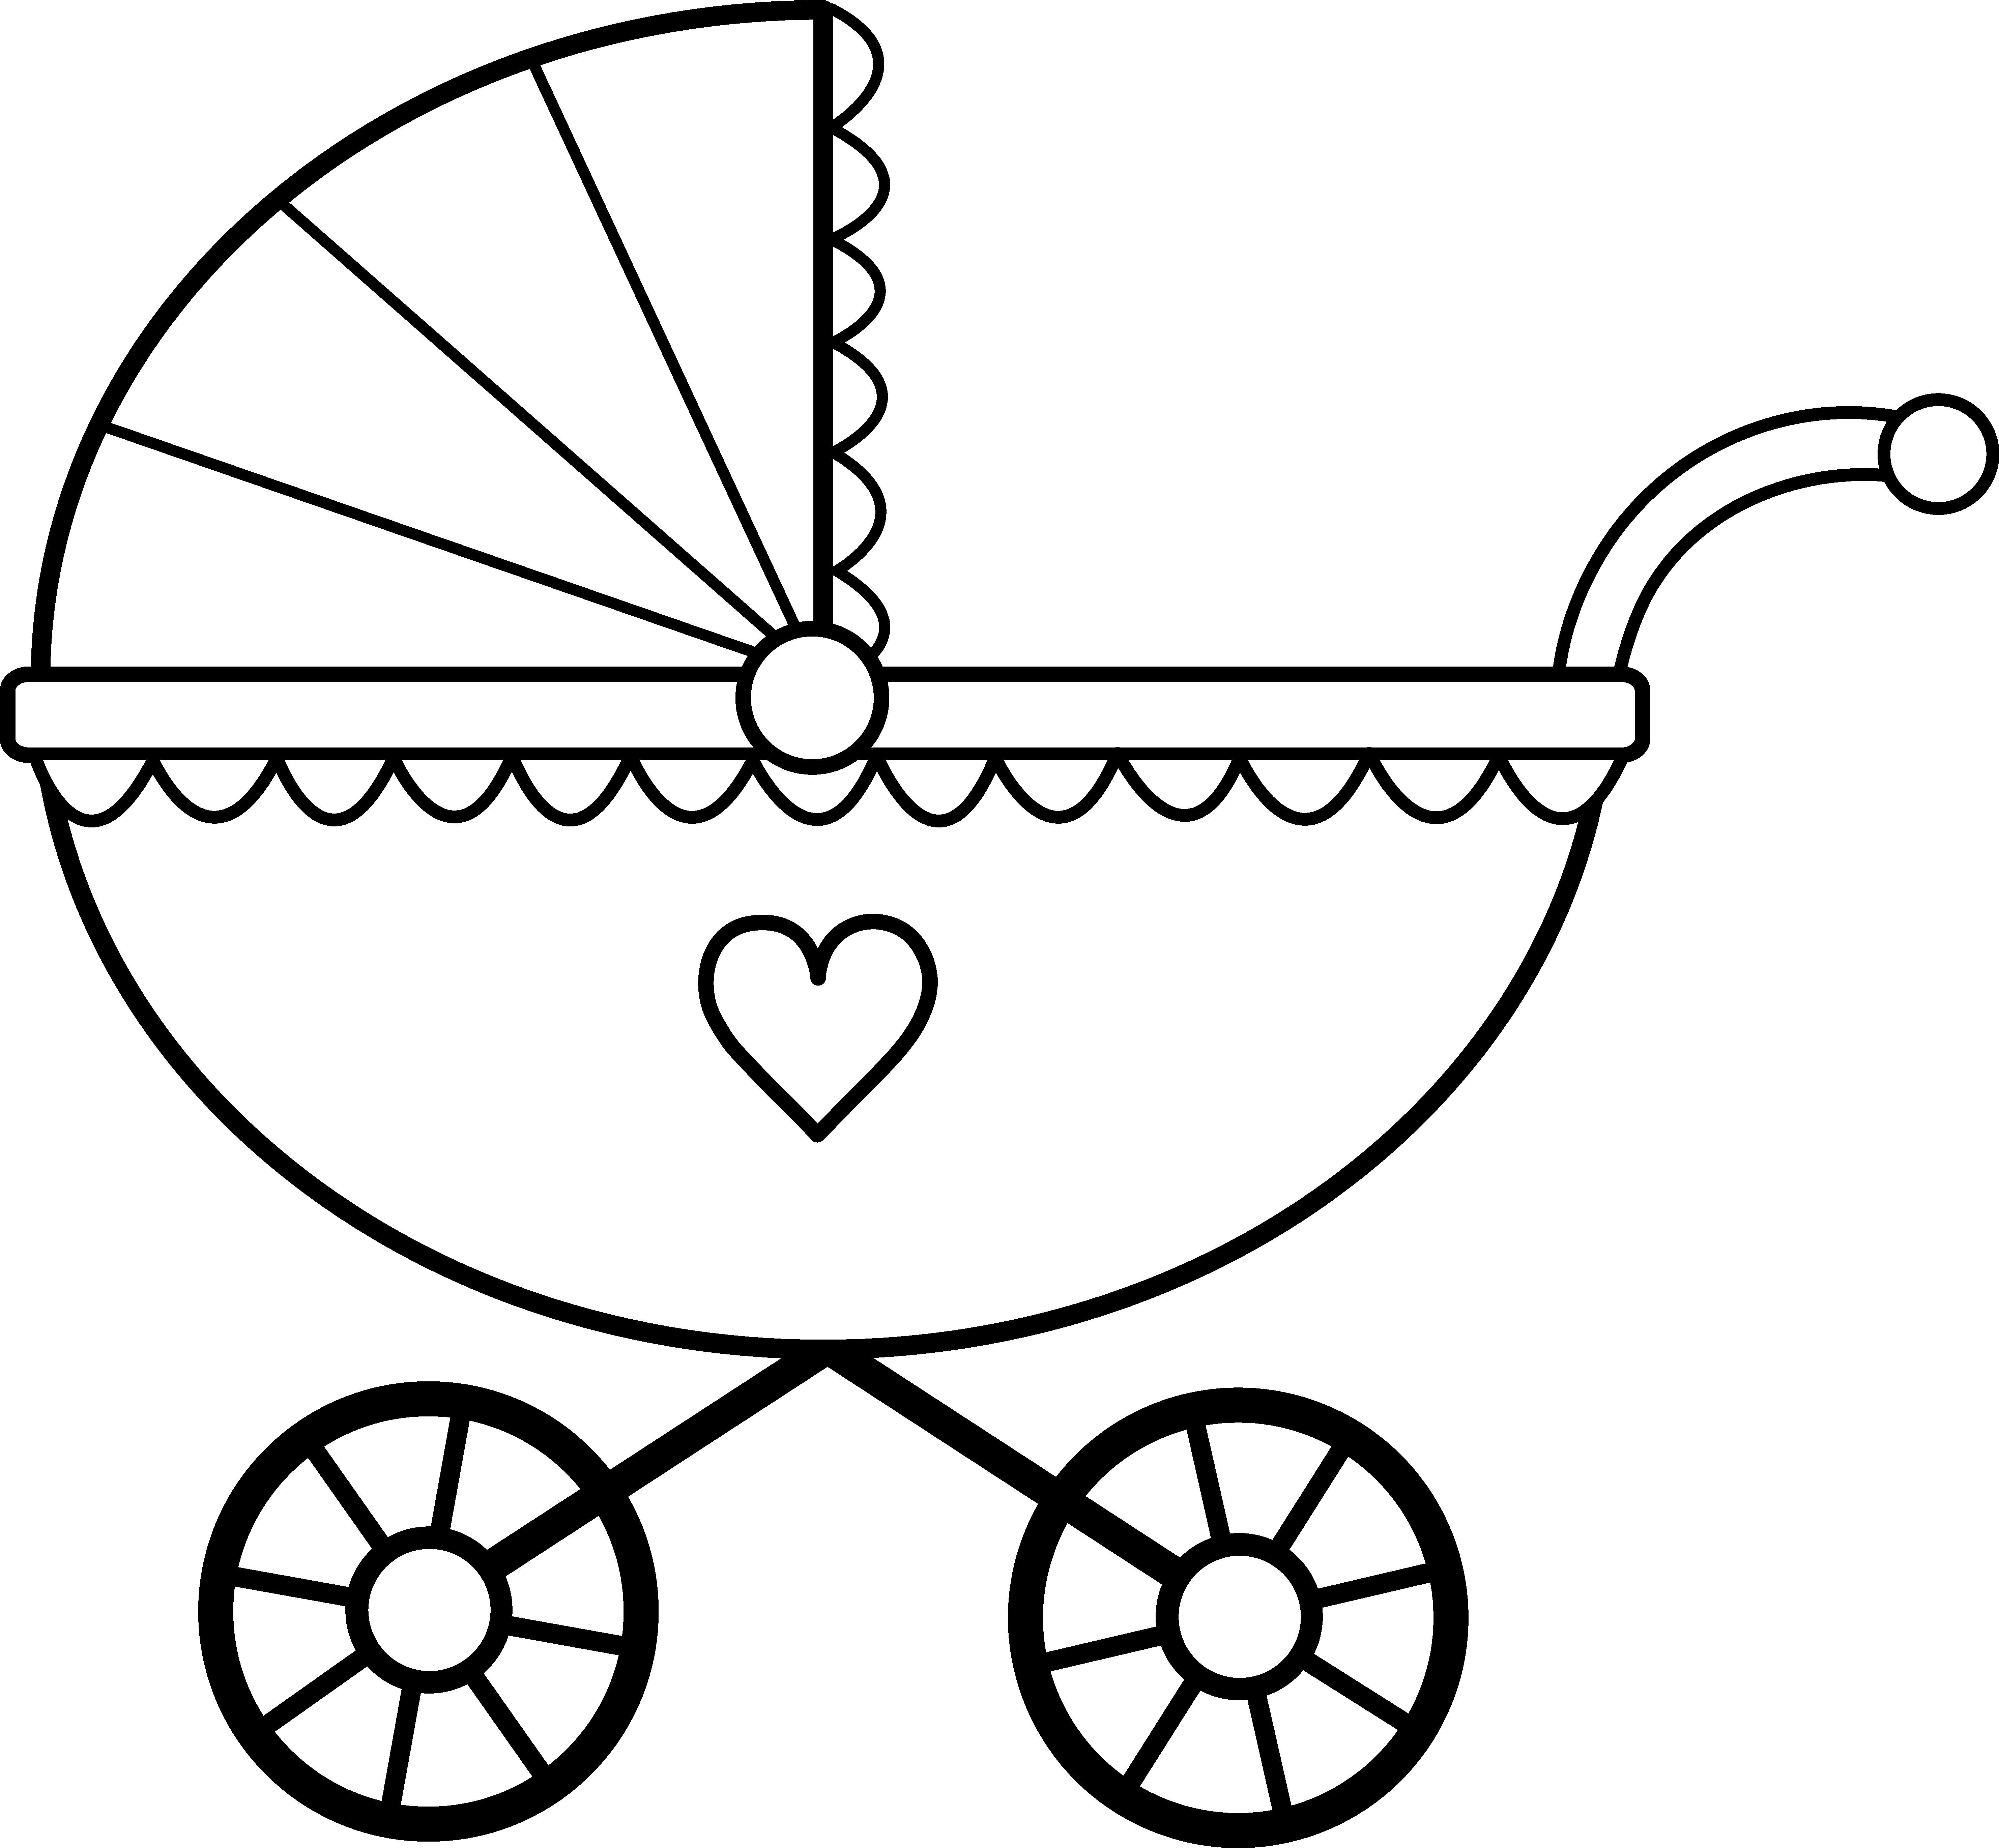 Clipart babies in carriages clip black and white library Free Baby Carriage Clipart, Download Free Clip Art, Free Clip Art on ... clip black and white library